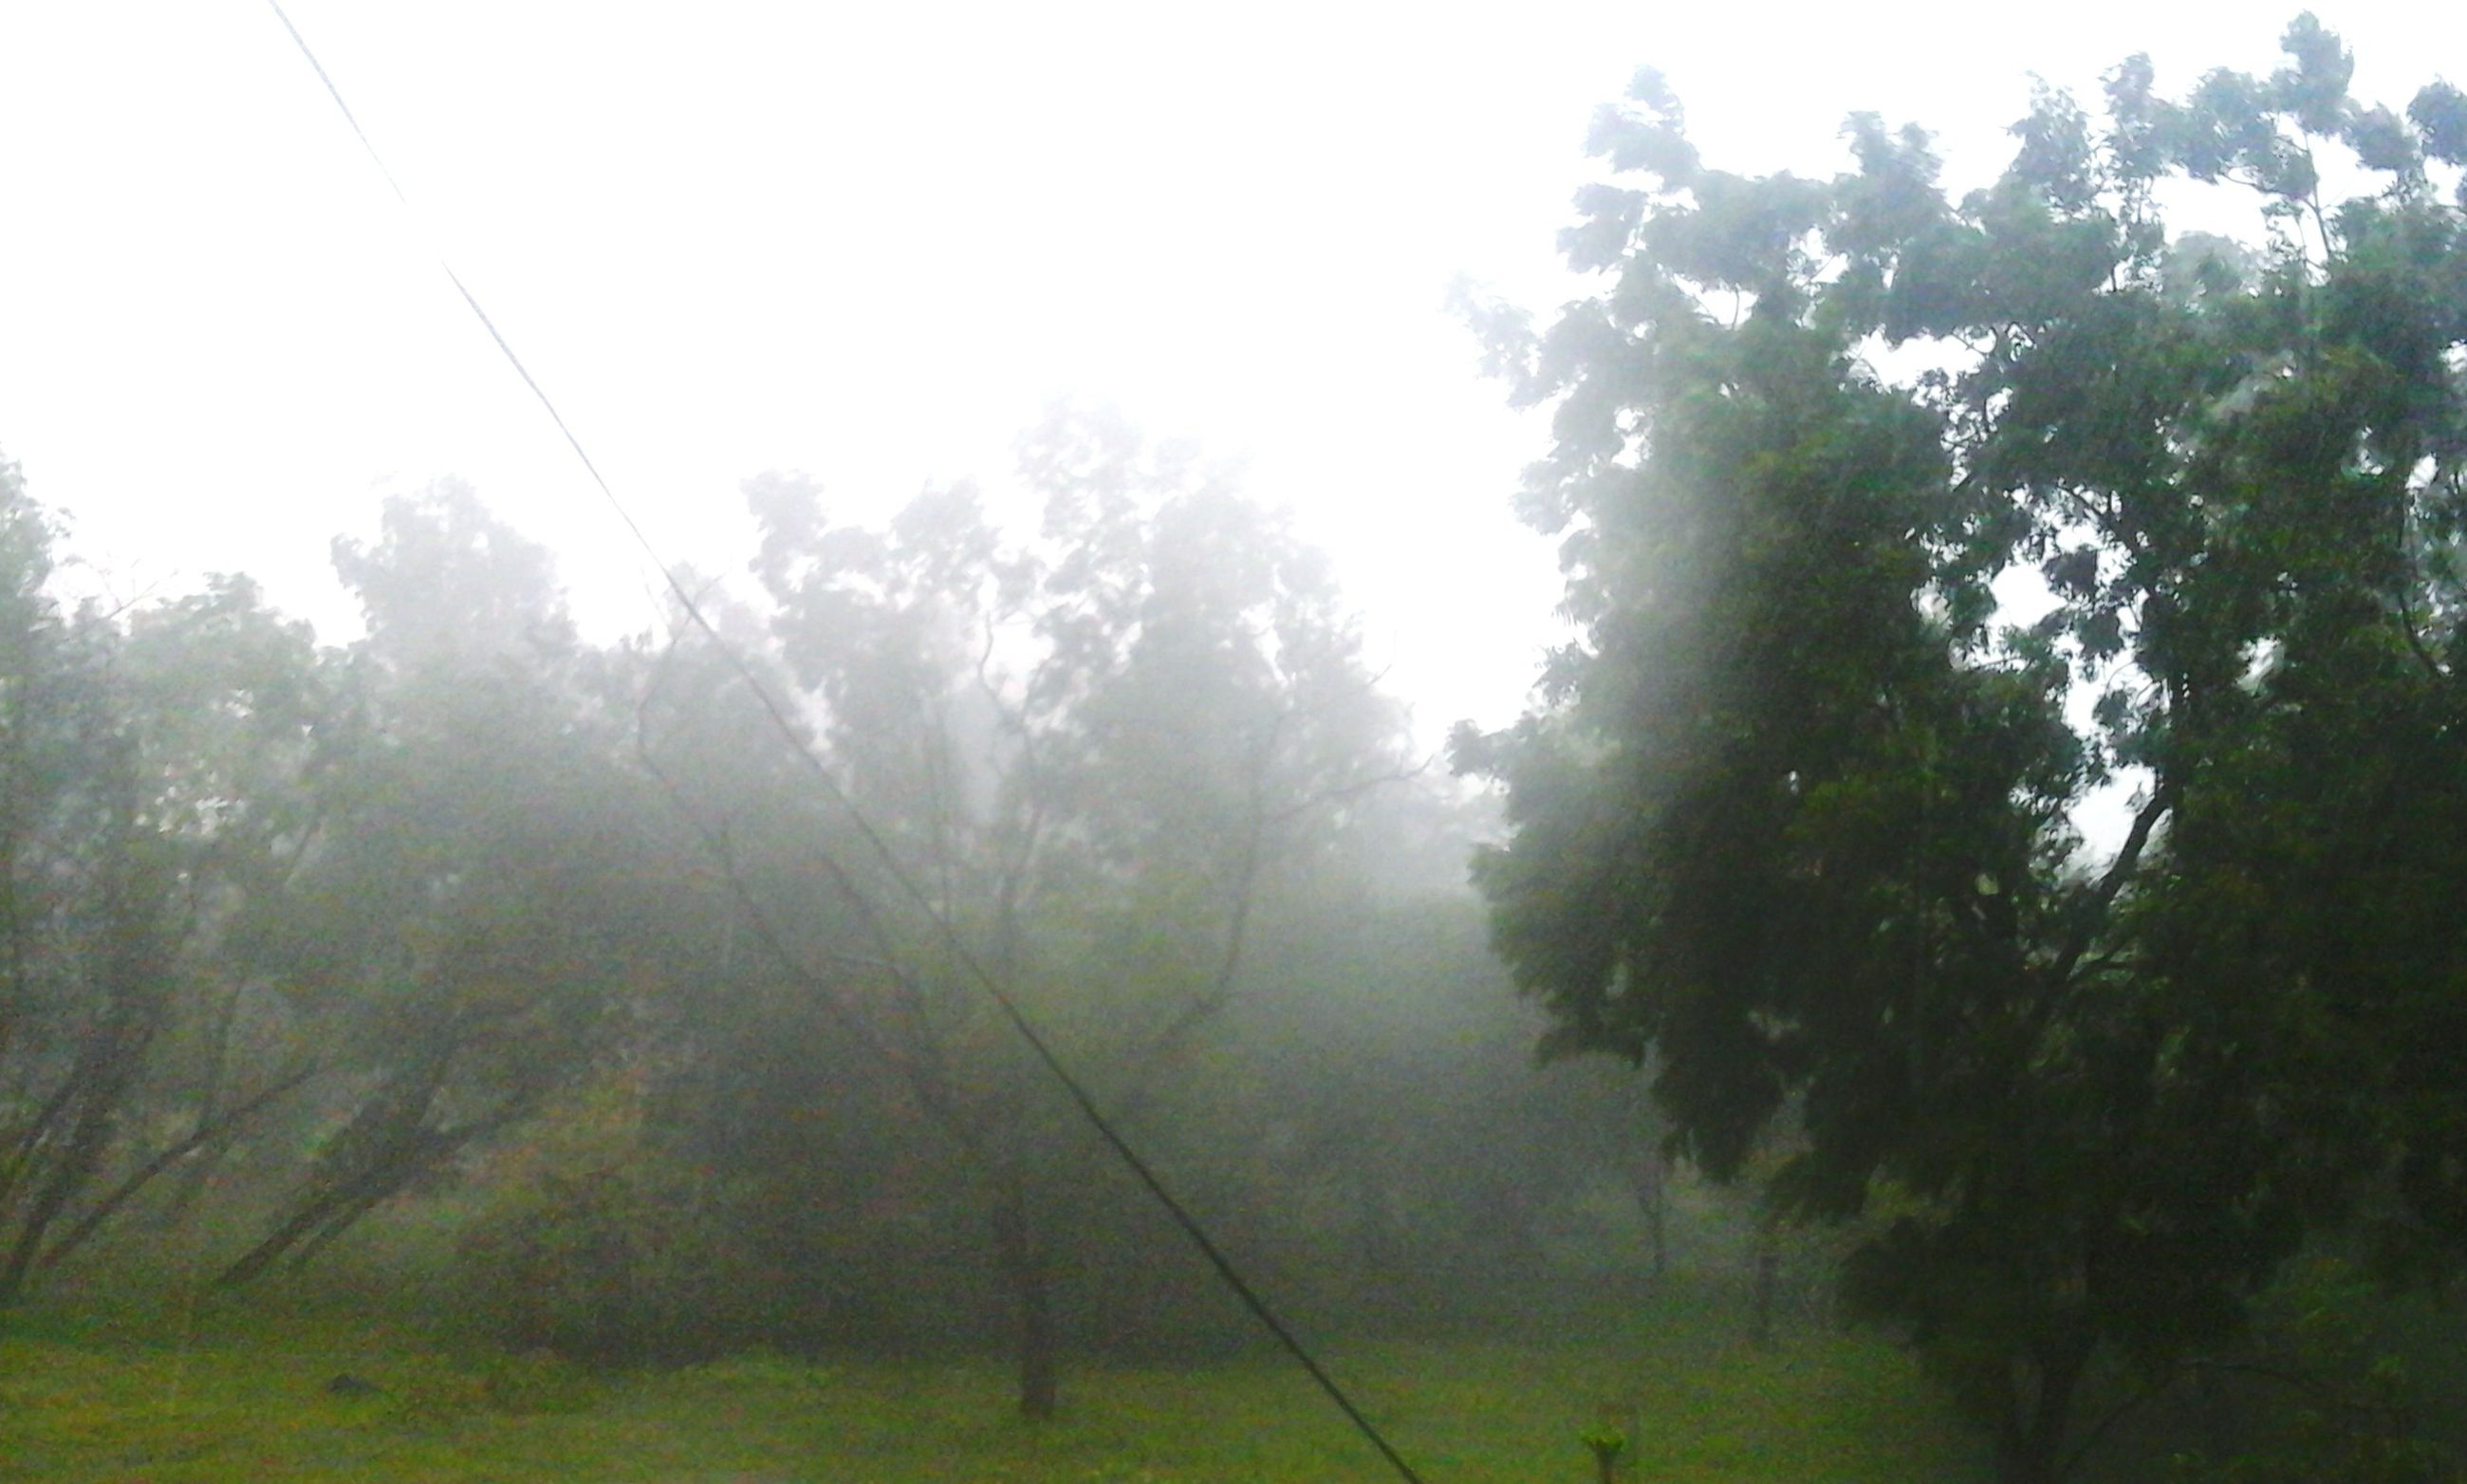 tree, tranquility, fog, tranquil scene, growth, beauty in nature, nature, foggy, forest, scenics, branch, non-urban scene, green color, day, sky, outdoors, no people, low angle view, sunlight